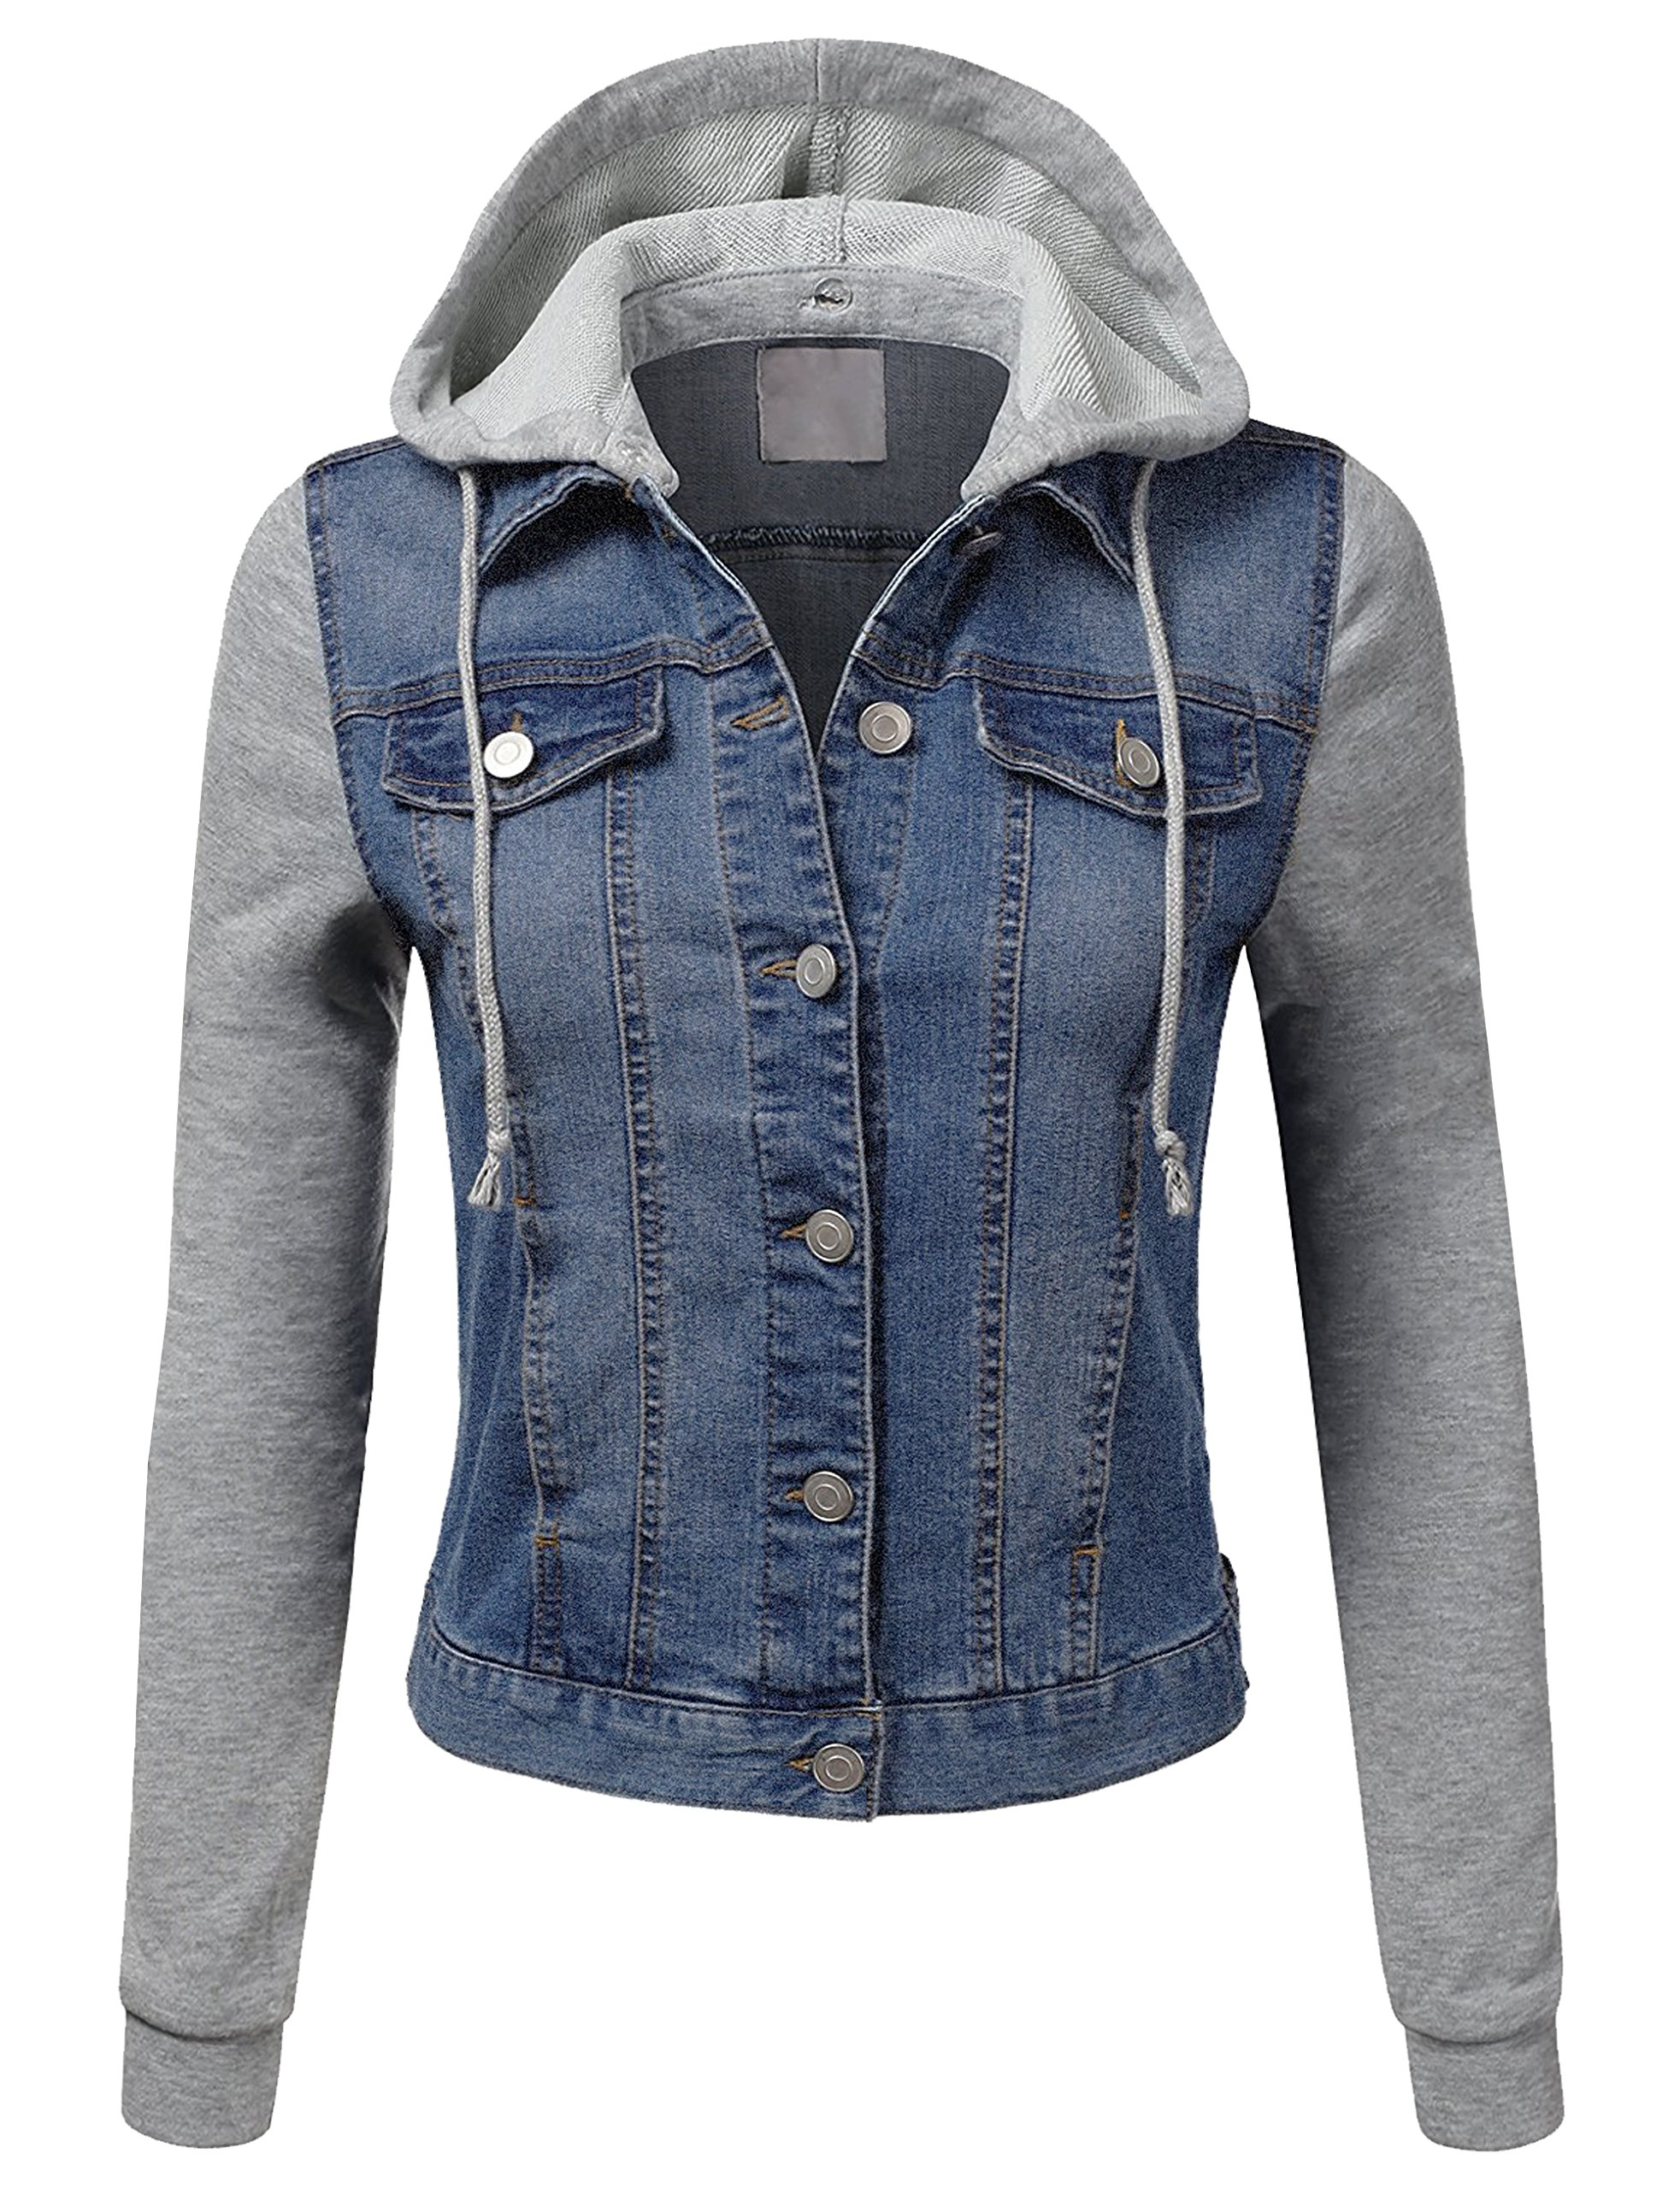 BEKDO Womens Hoodie Denim Jacket Lightweight Fleece Sleeve and Pockets-S-Blue